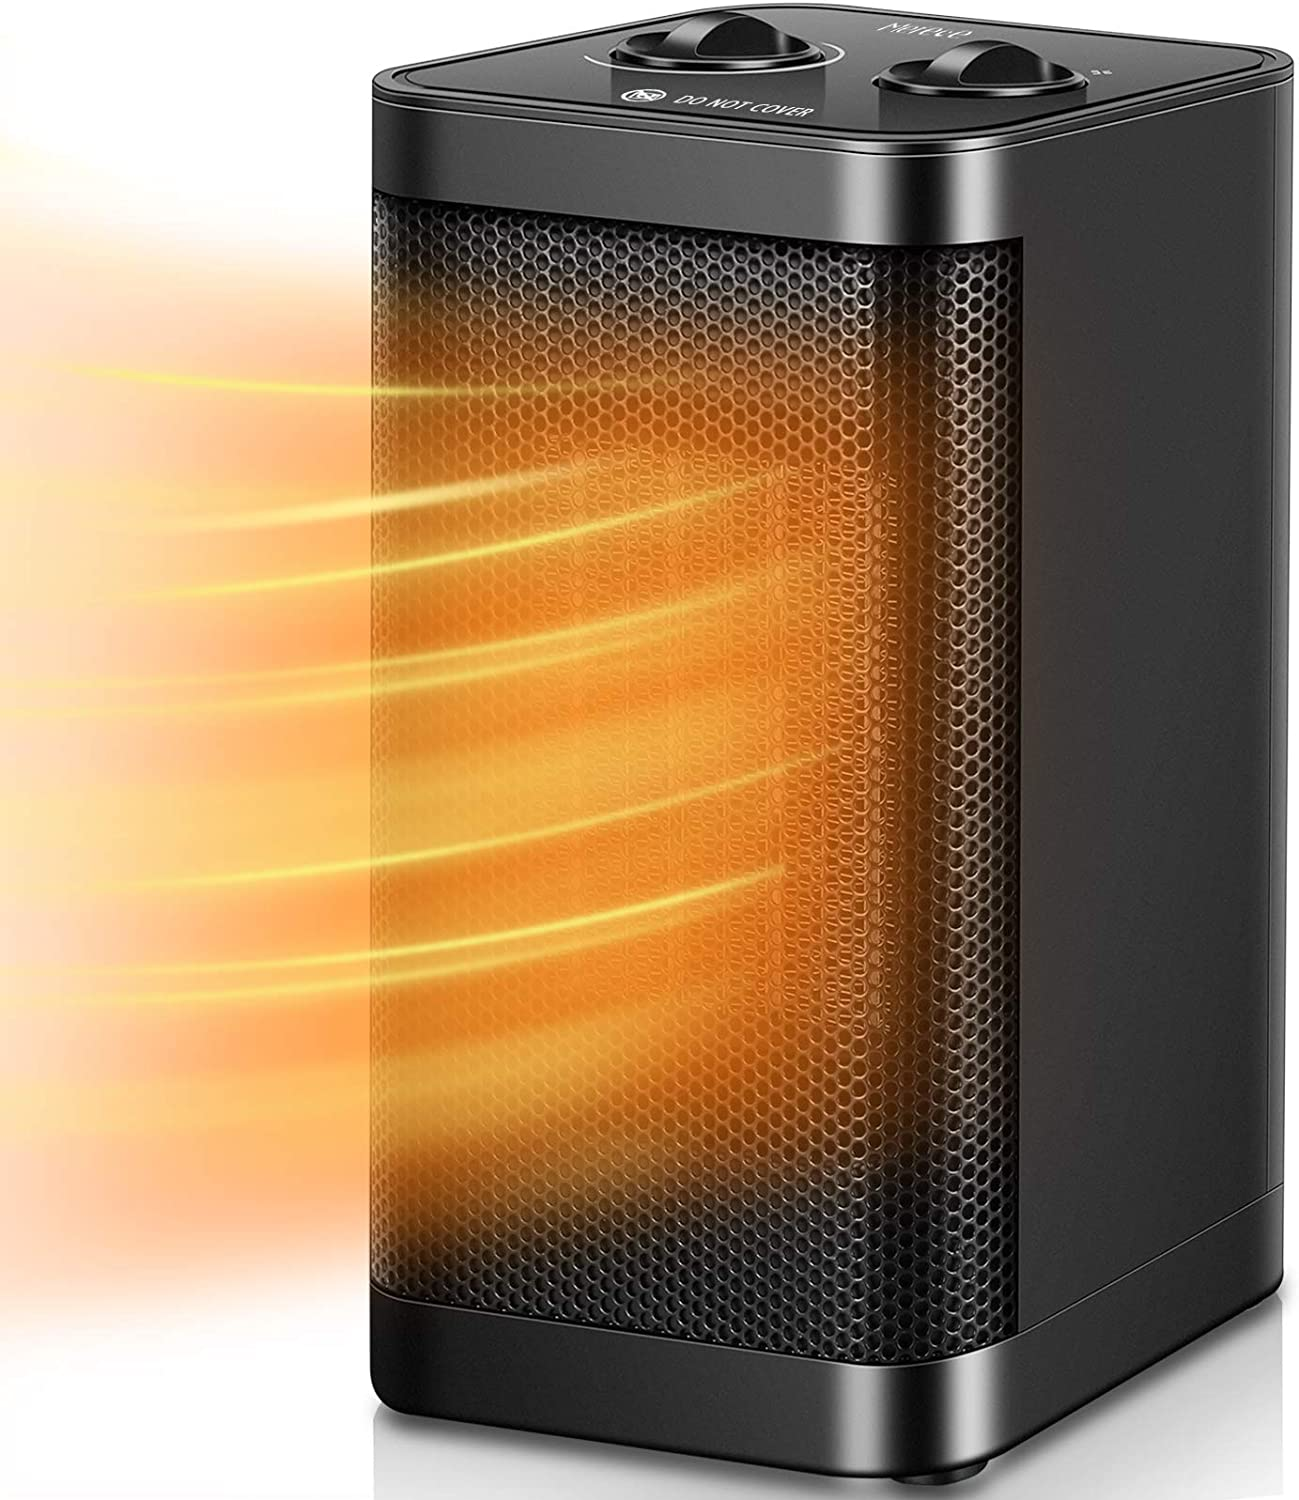 Electric Space Heater - Merece 1500W PTC Portable Space Heaters for Indoor Use Home Office Bedroom Garage with Thermostat, Small Desk Room Heater 3 Modes with Tip-Over and Overheat Auto Off(160 sq ft)